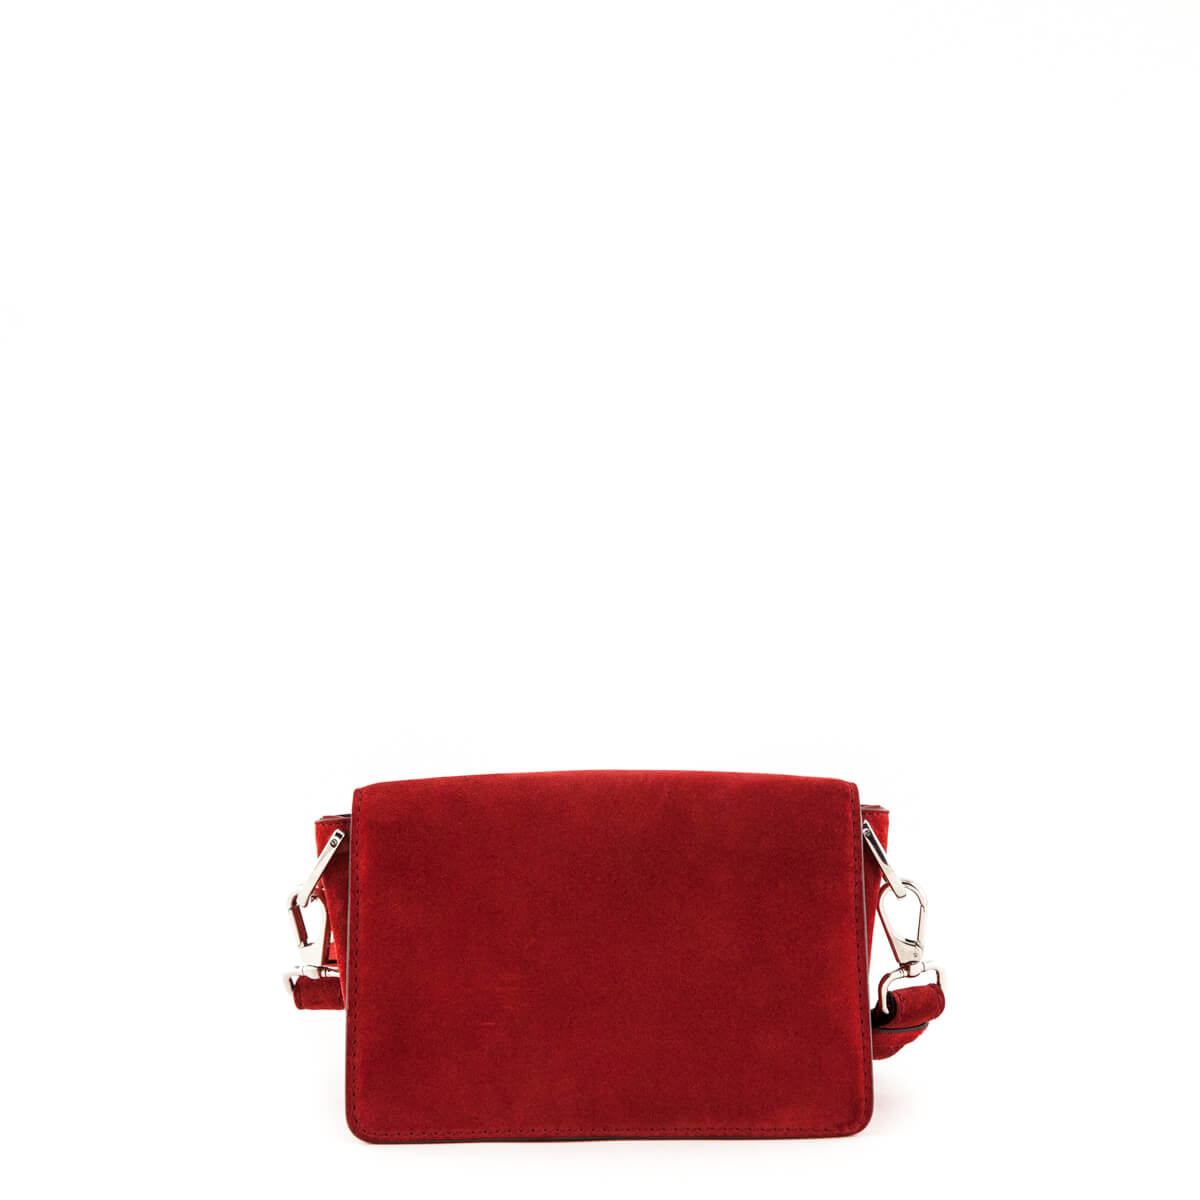 eaa57ce4c2 ... Tod's Red Suede Mini Double T Crossbody Bag - LOVE that BAG - Preowned  Authentic Designer ...